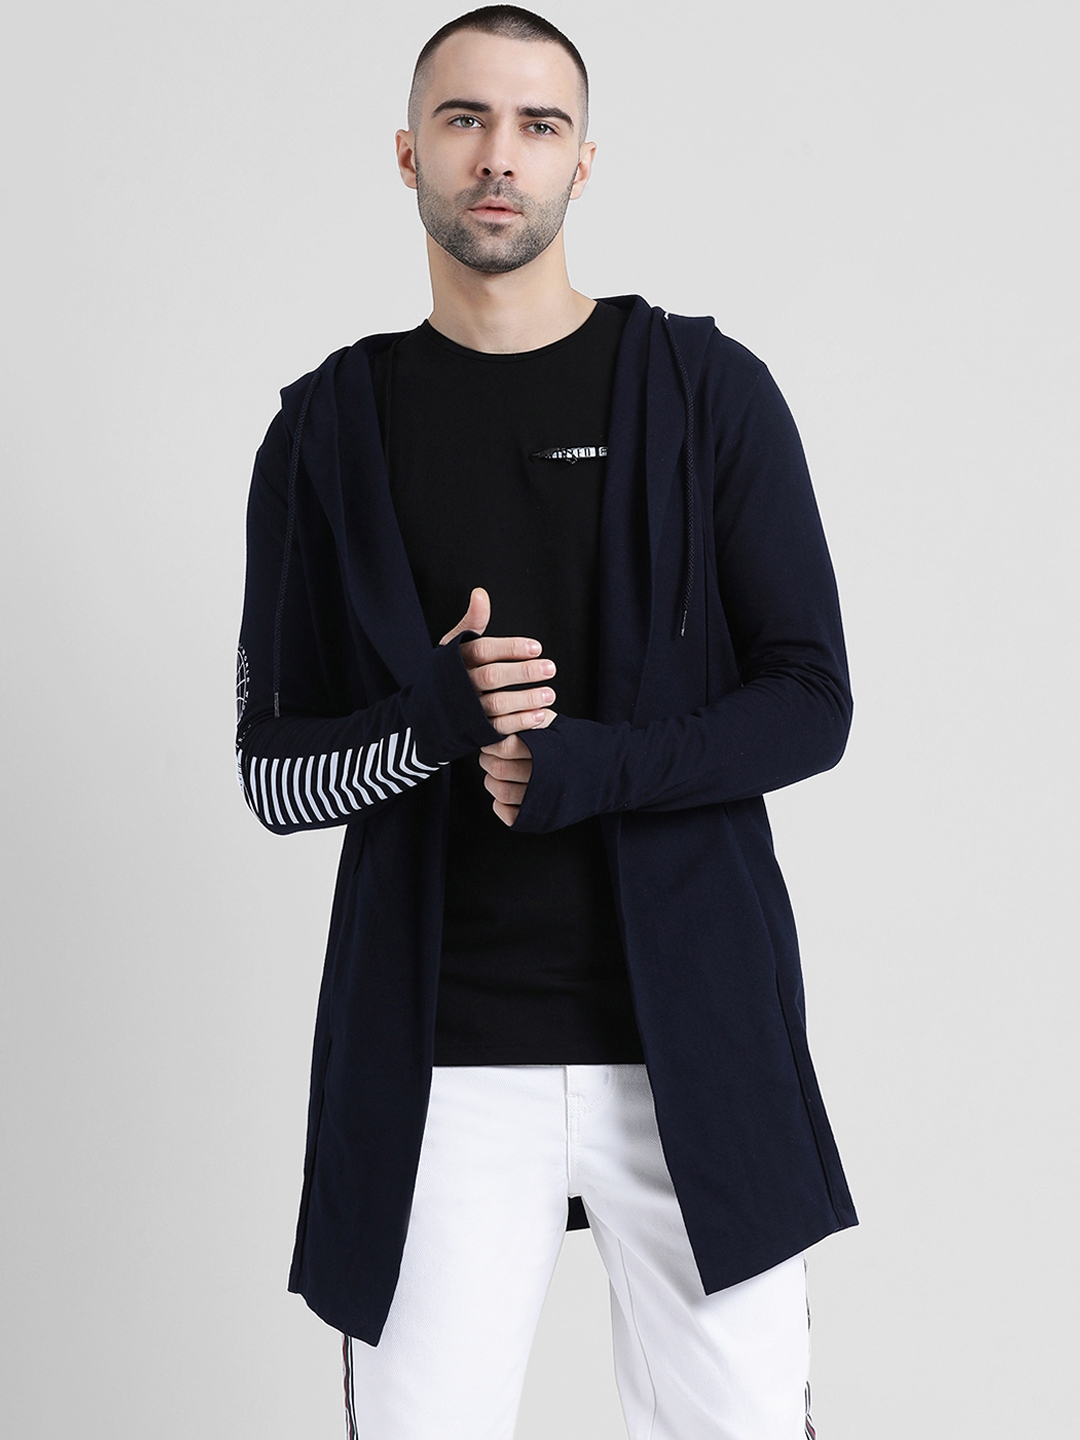 Tinted Men Navy Blue Solid Open Front Jacket